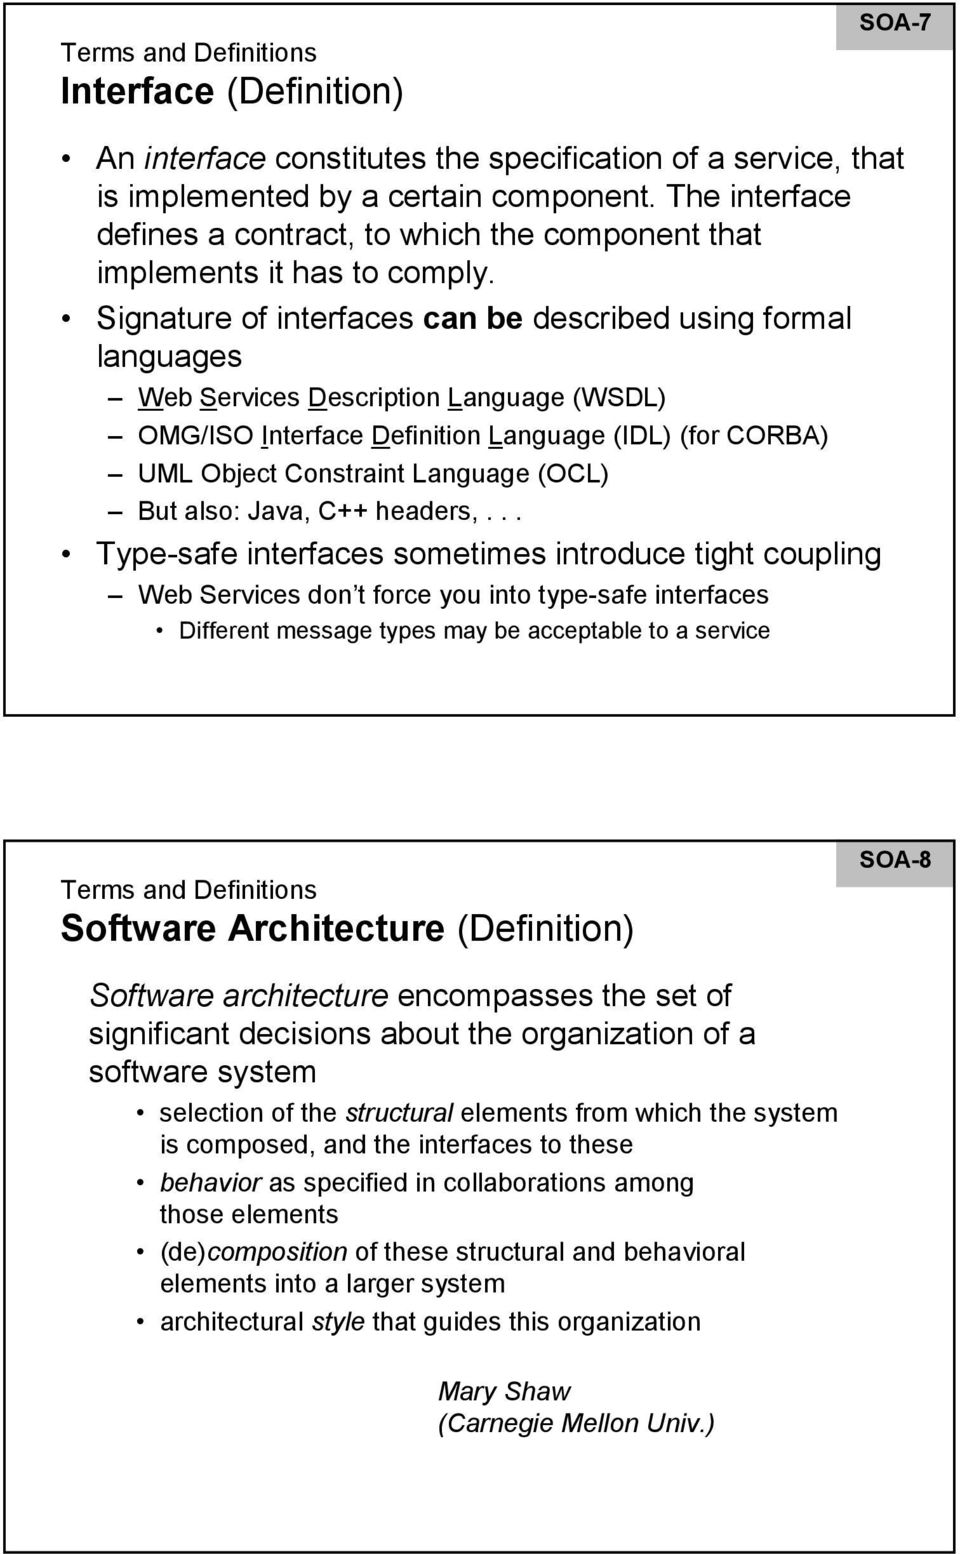 Signature of interfaces can be described using formal languages Web Services Description Language (WSDL) OMG/ISO Interface Definition Language (IDL) (for CORBA) UML Object Constraint Language (OCL)